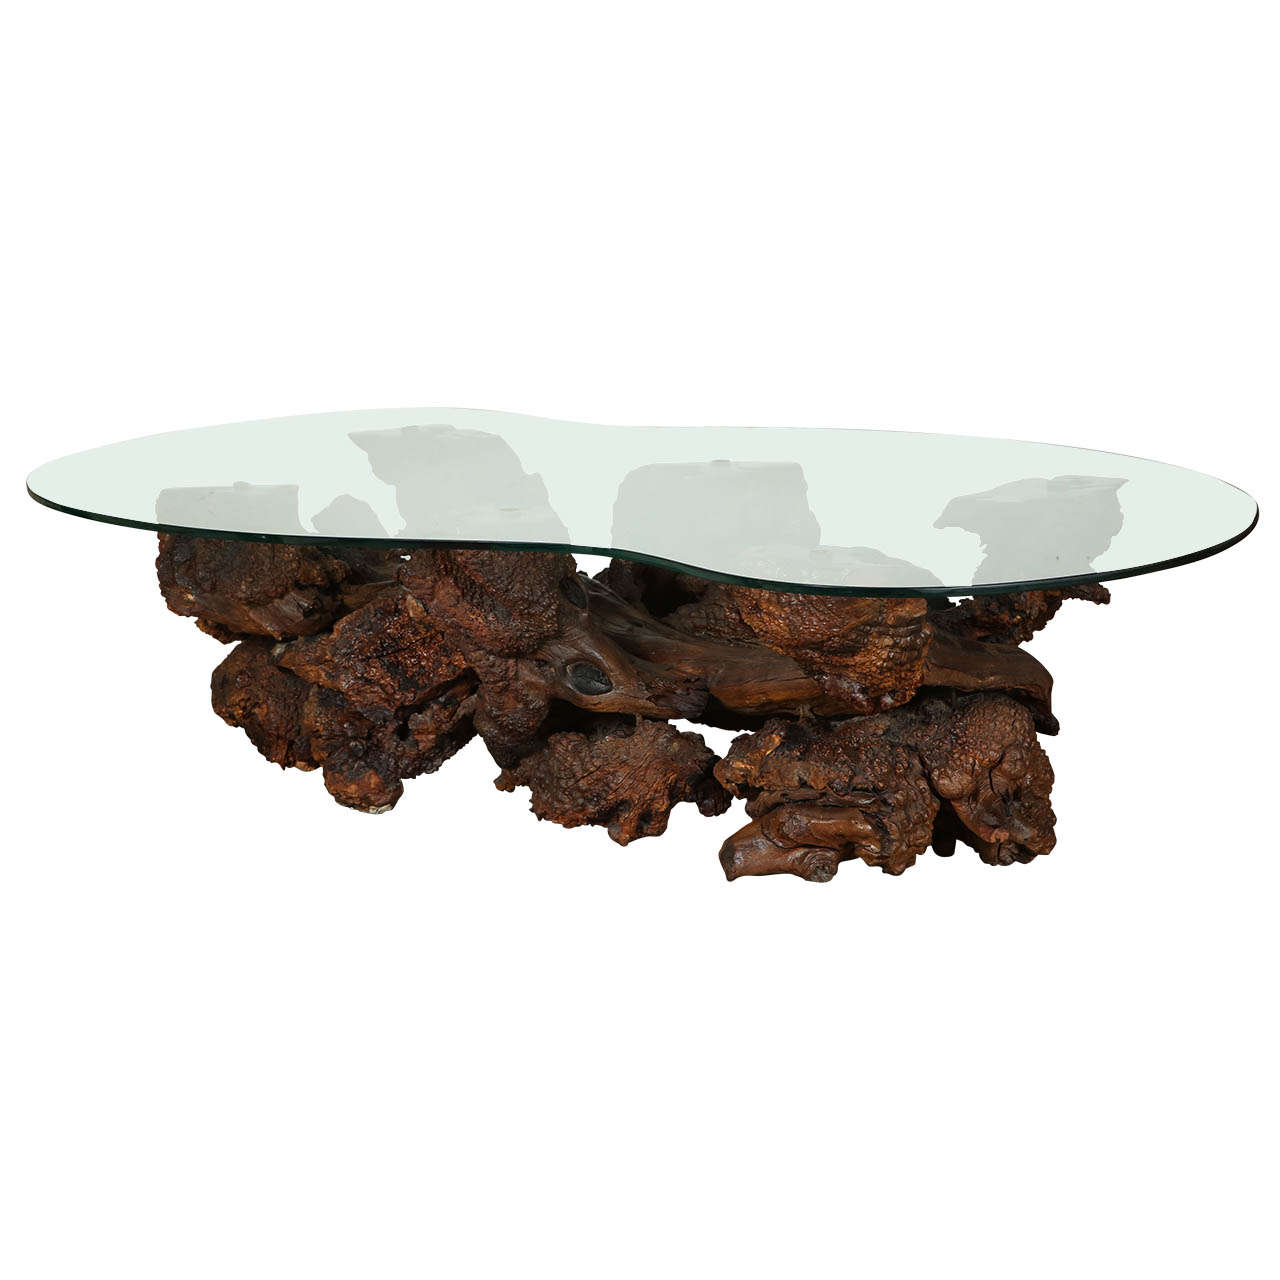 Burl Coffee Table: Spectacular Sculptural Large Burl Driftwood Coffee Table